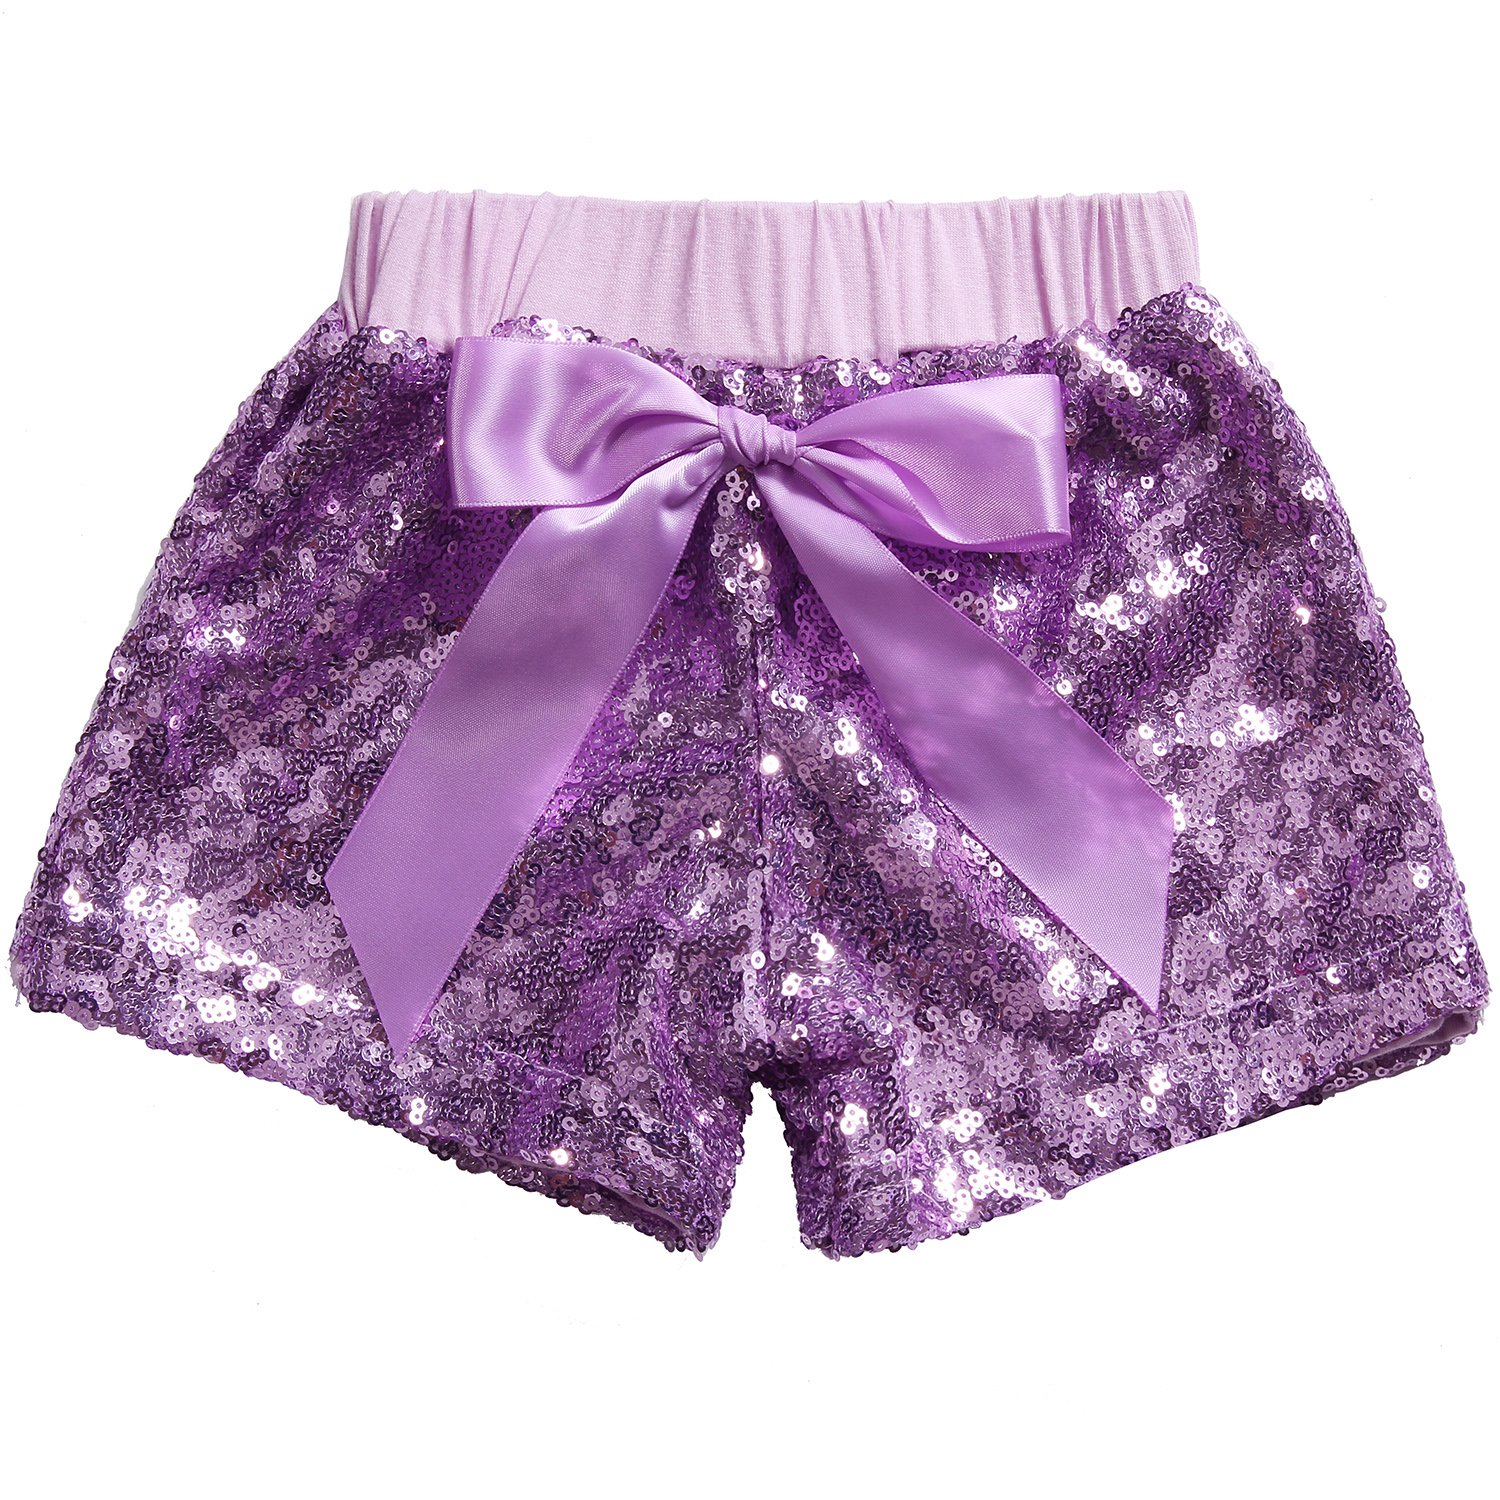 71a4dfc4c Cilucu Girls Shorts Toddler Sequin Shorts Sparkles on Both Sides Purple 6T